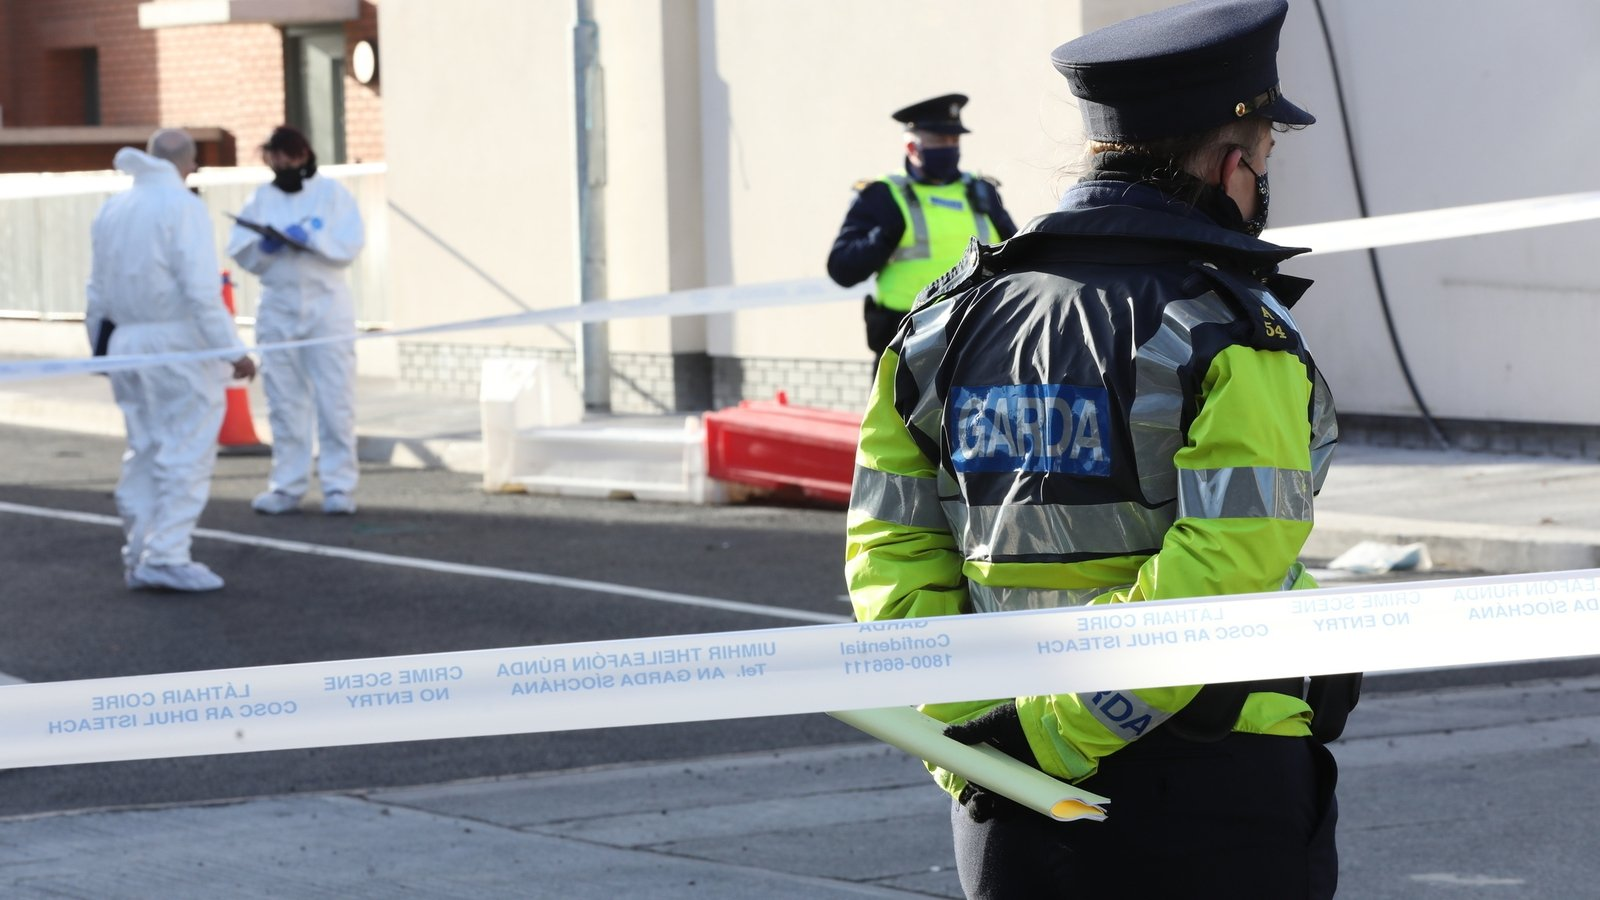 Two Men Charged Over Shooting Of Teenager In Dublin